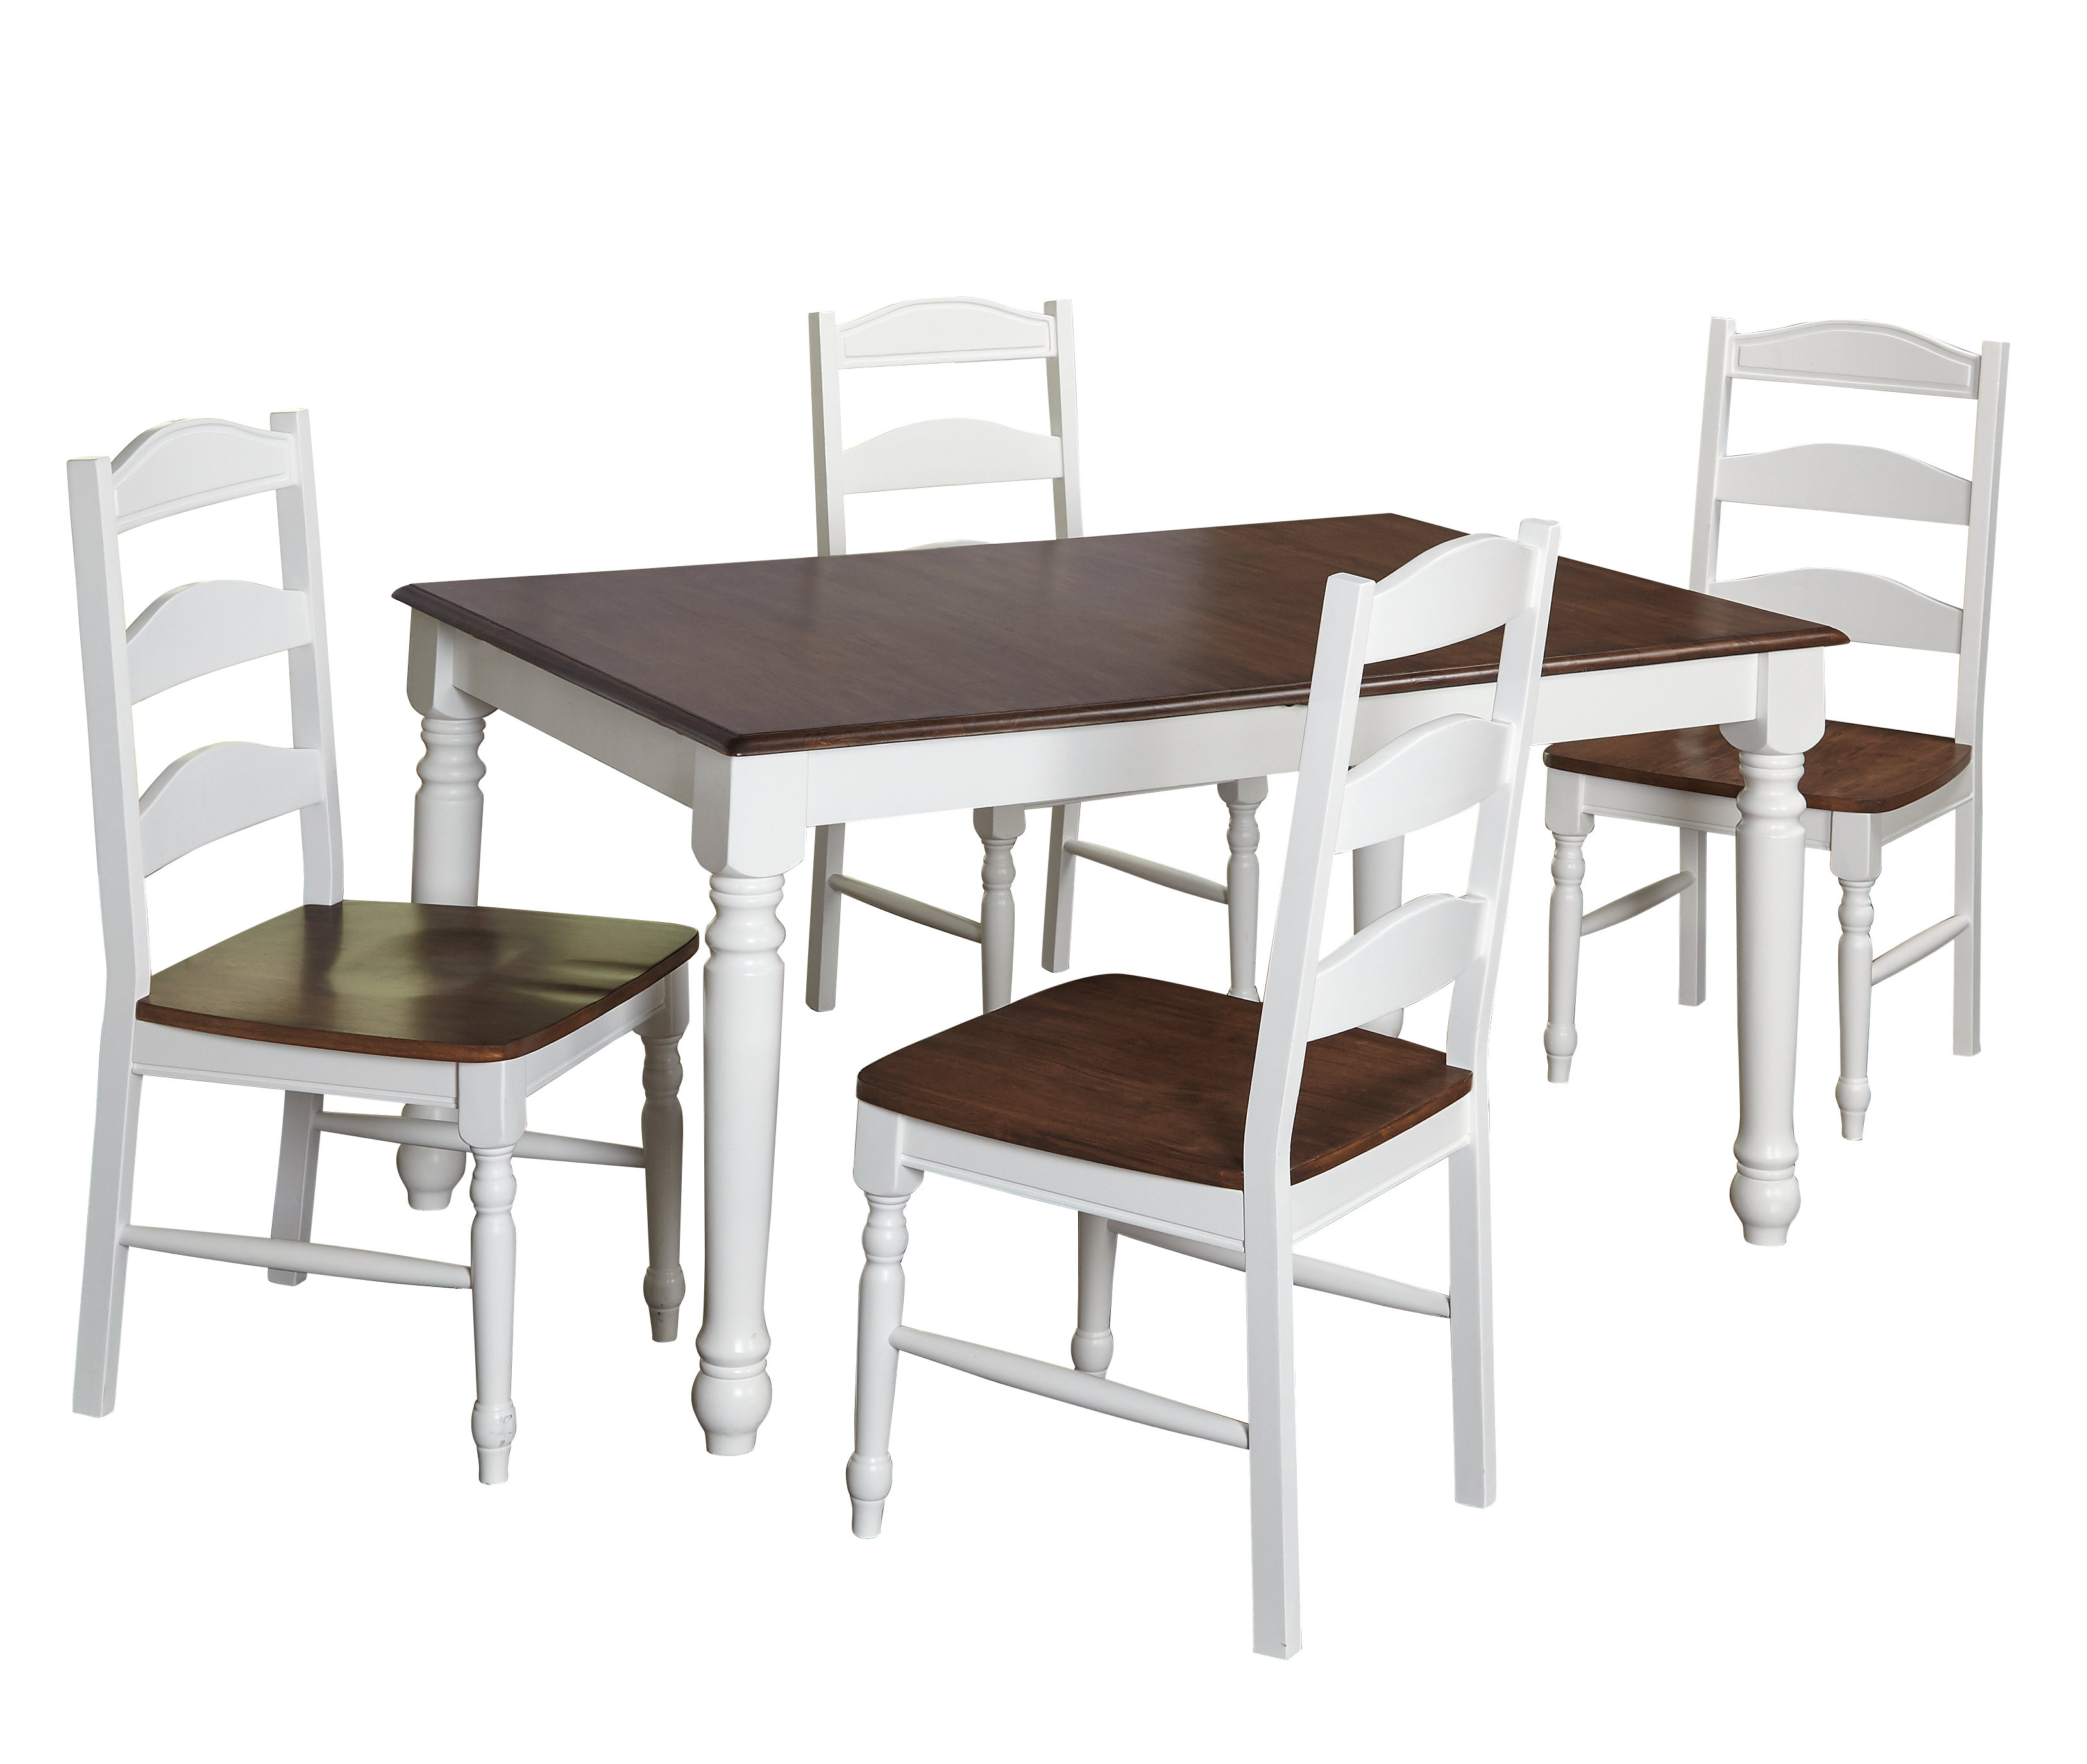 Fleurance 5 Piece Dining Set Intended For Most Up To Date Stouferberg 5 Piece Dining Sets (Photo 12 of 20)